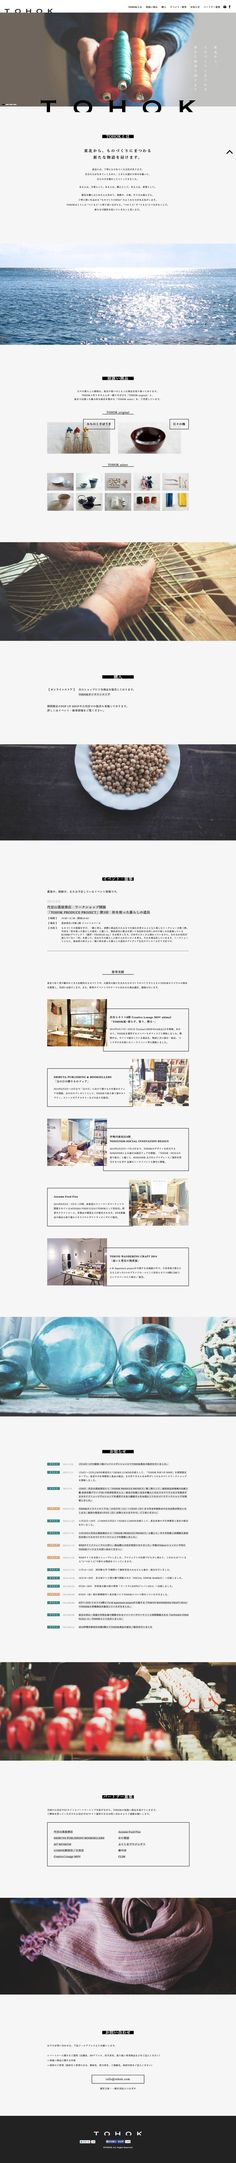 TOHOK / It is nice to look at a website in another language, as it allows me to… Web Design, Site Design, Graphic Design, Web Layout, Layout Design, Presentation Layout, Grid Layouts, Ui Web, Web Inspiration